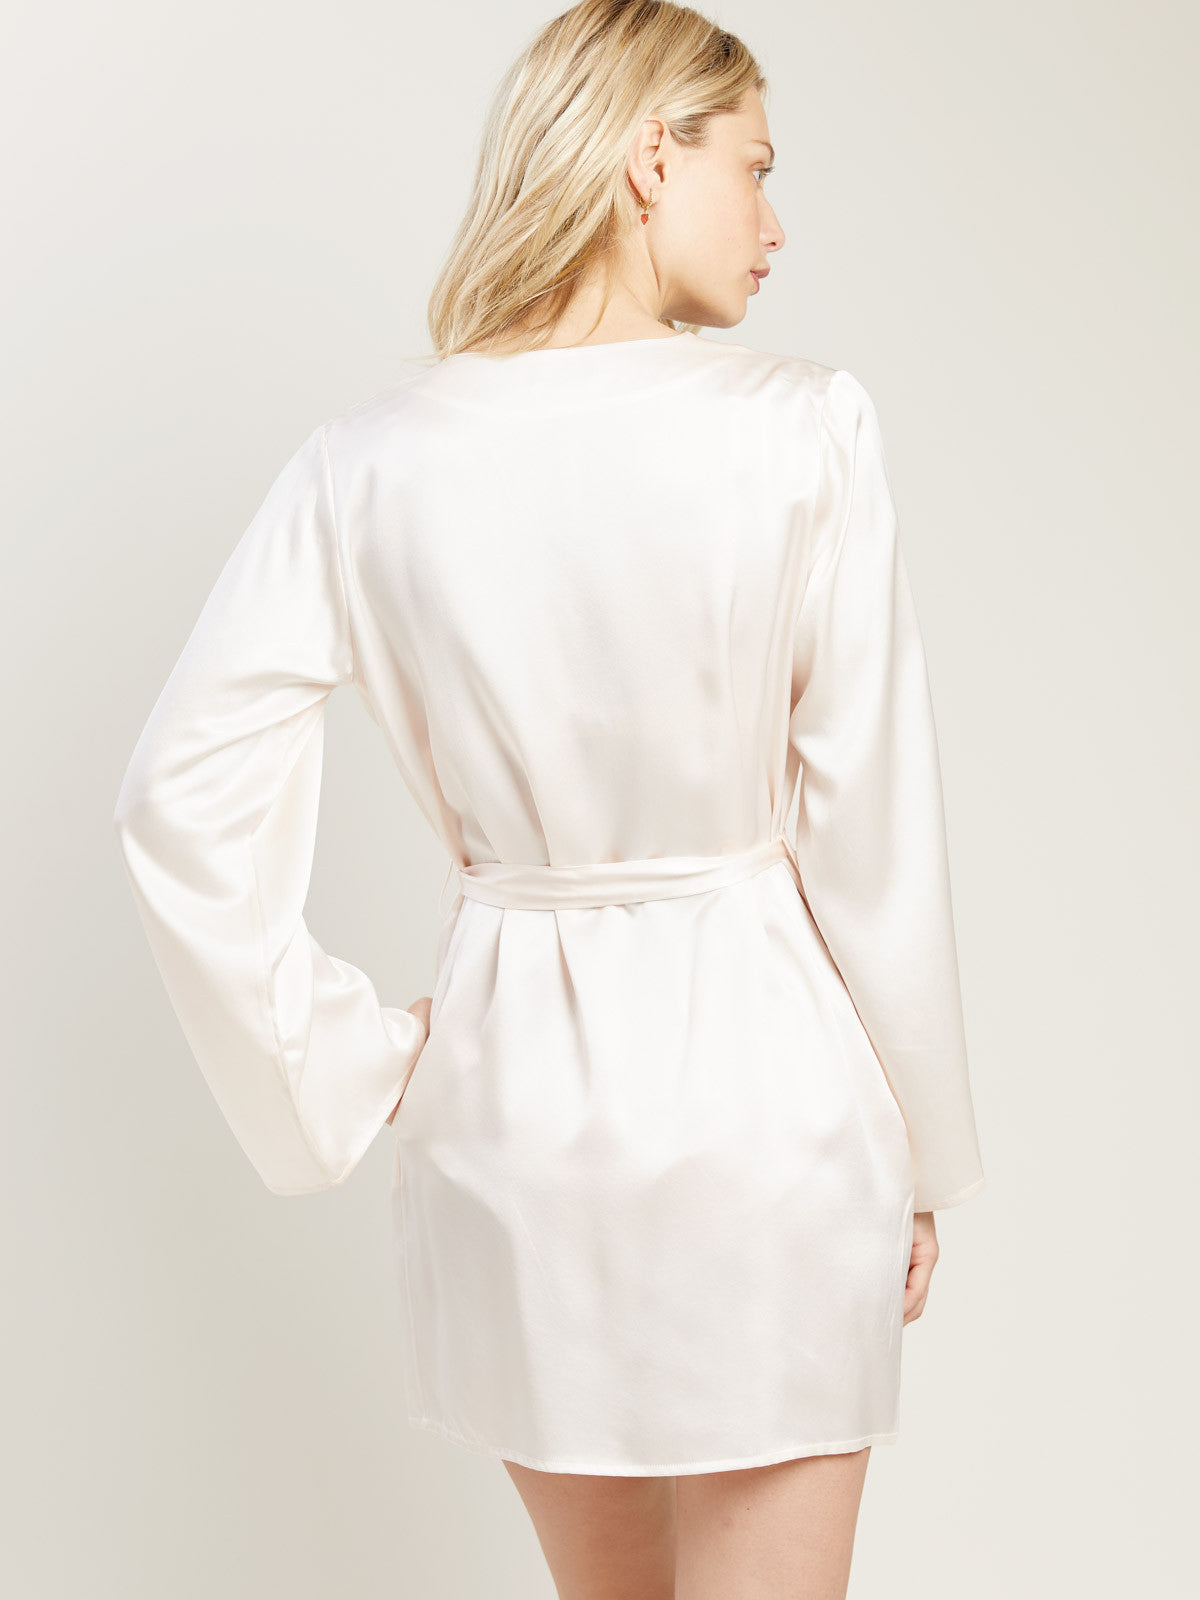 Langley Robe in Vanilla By Morgan Lane